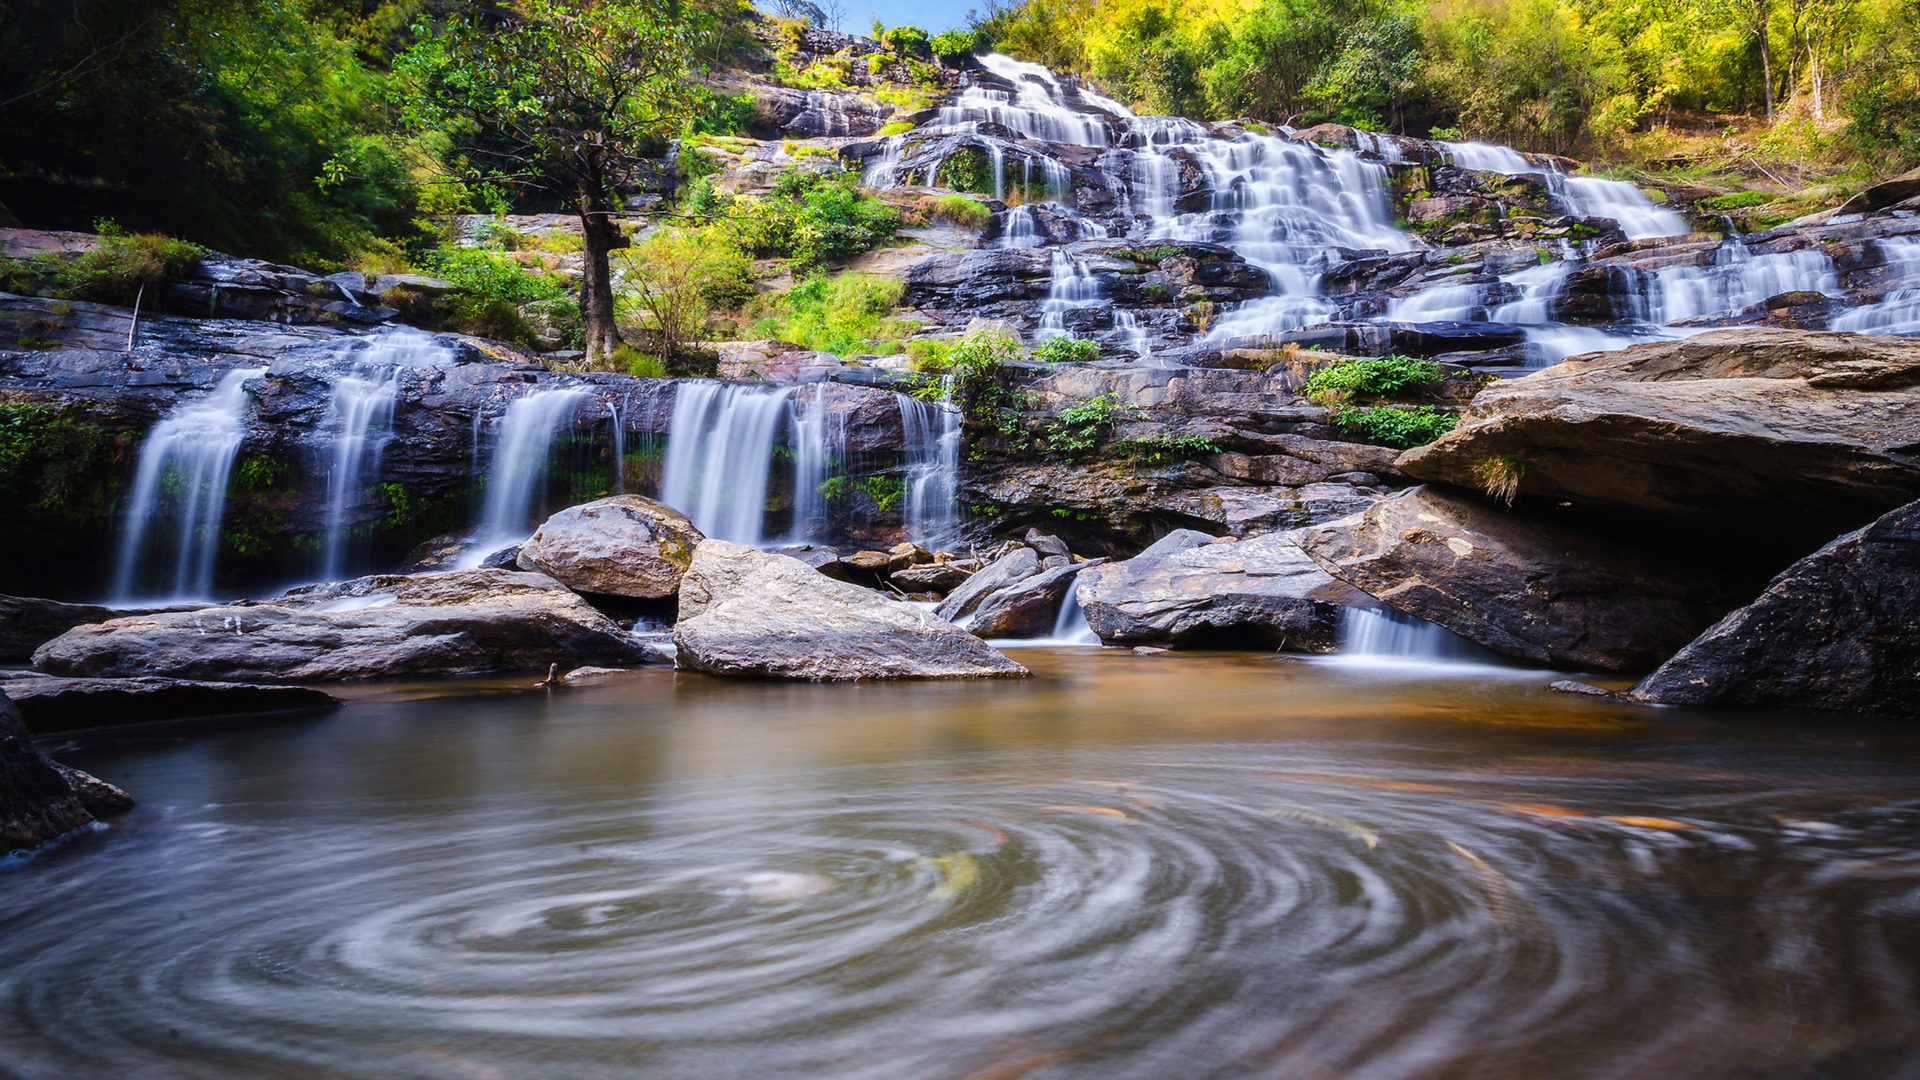 Fall Landscape Free Wallpaper Mae Ya Waterfall Chiang Mai Thailand Desktop Hd